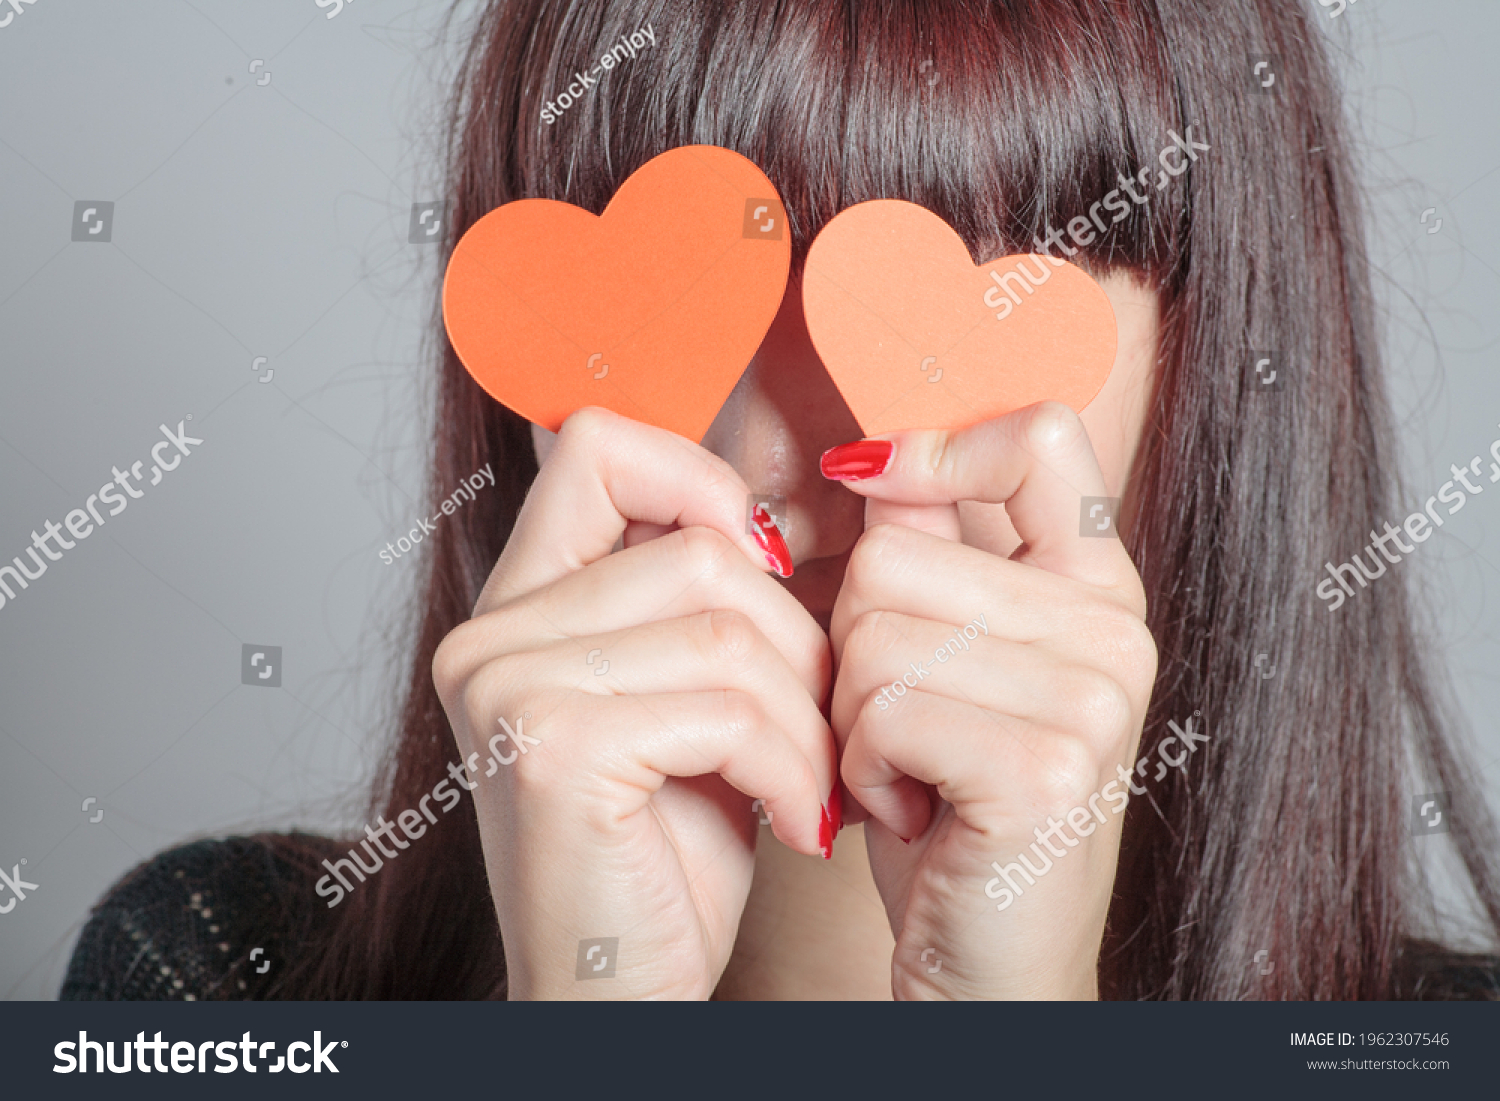 A girl covering her eyes with paper hearts, she is having fun and expressing her love vision